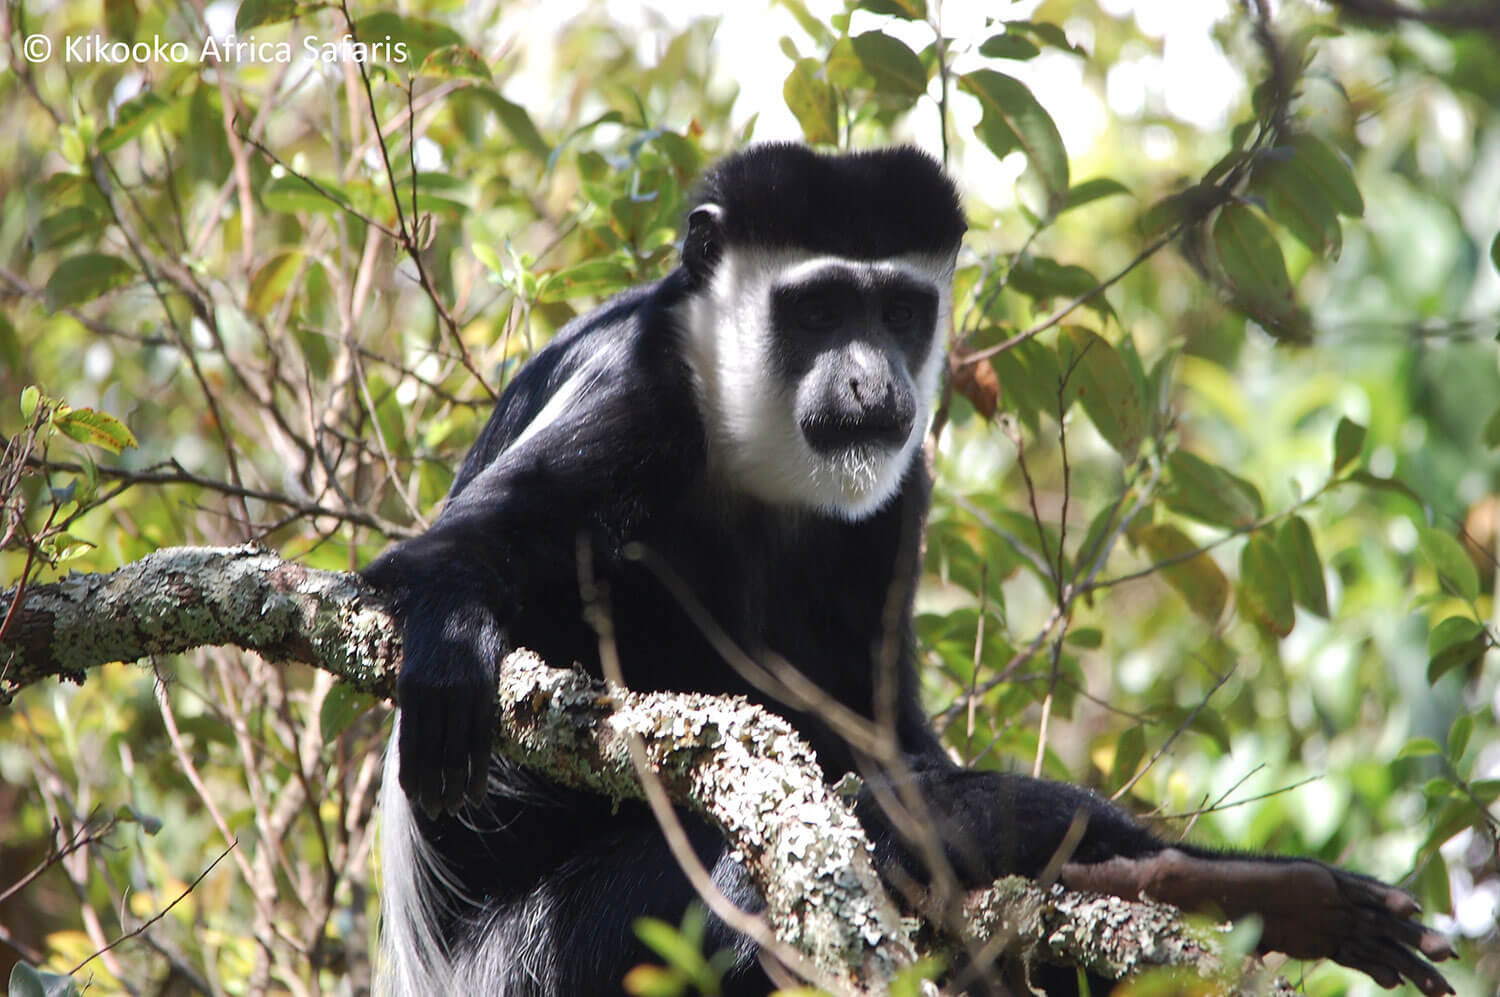 10-Kikooko-Africa-Safaris-Black-And-White-Colobus-Monkey.jpg